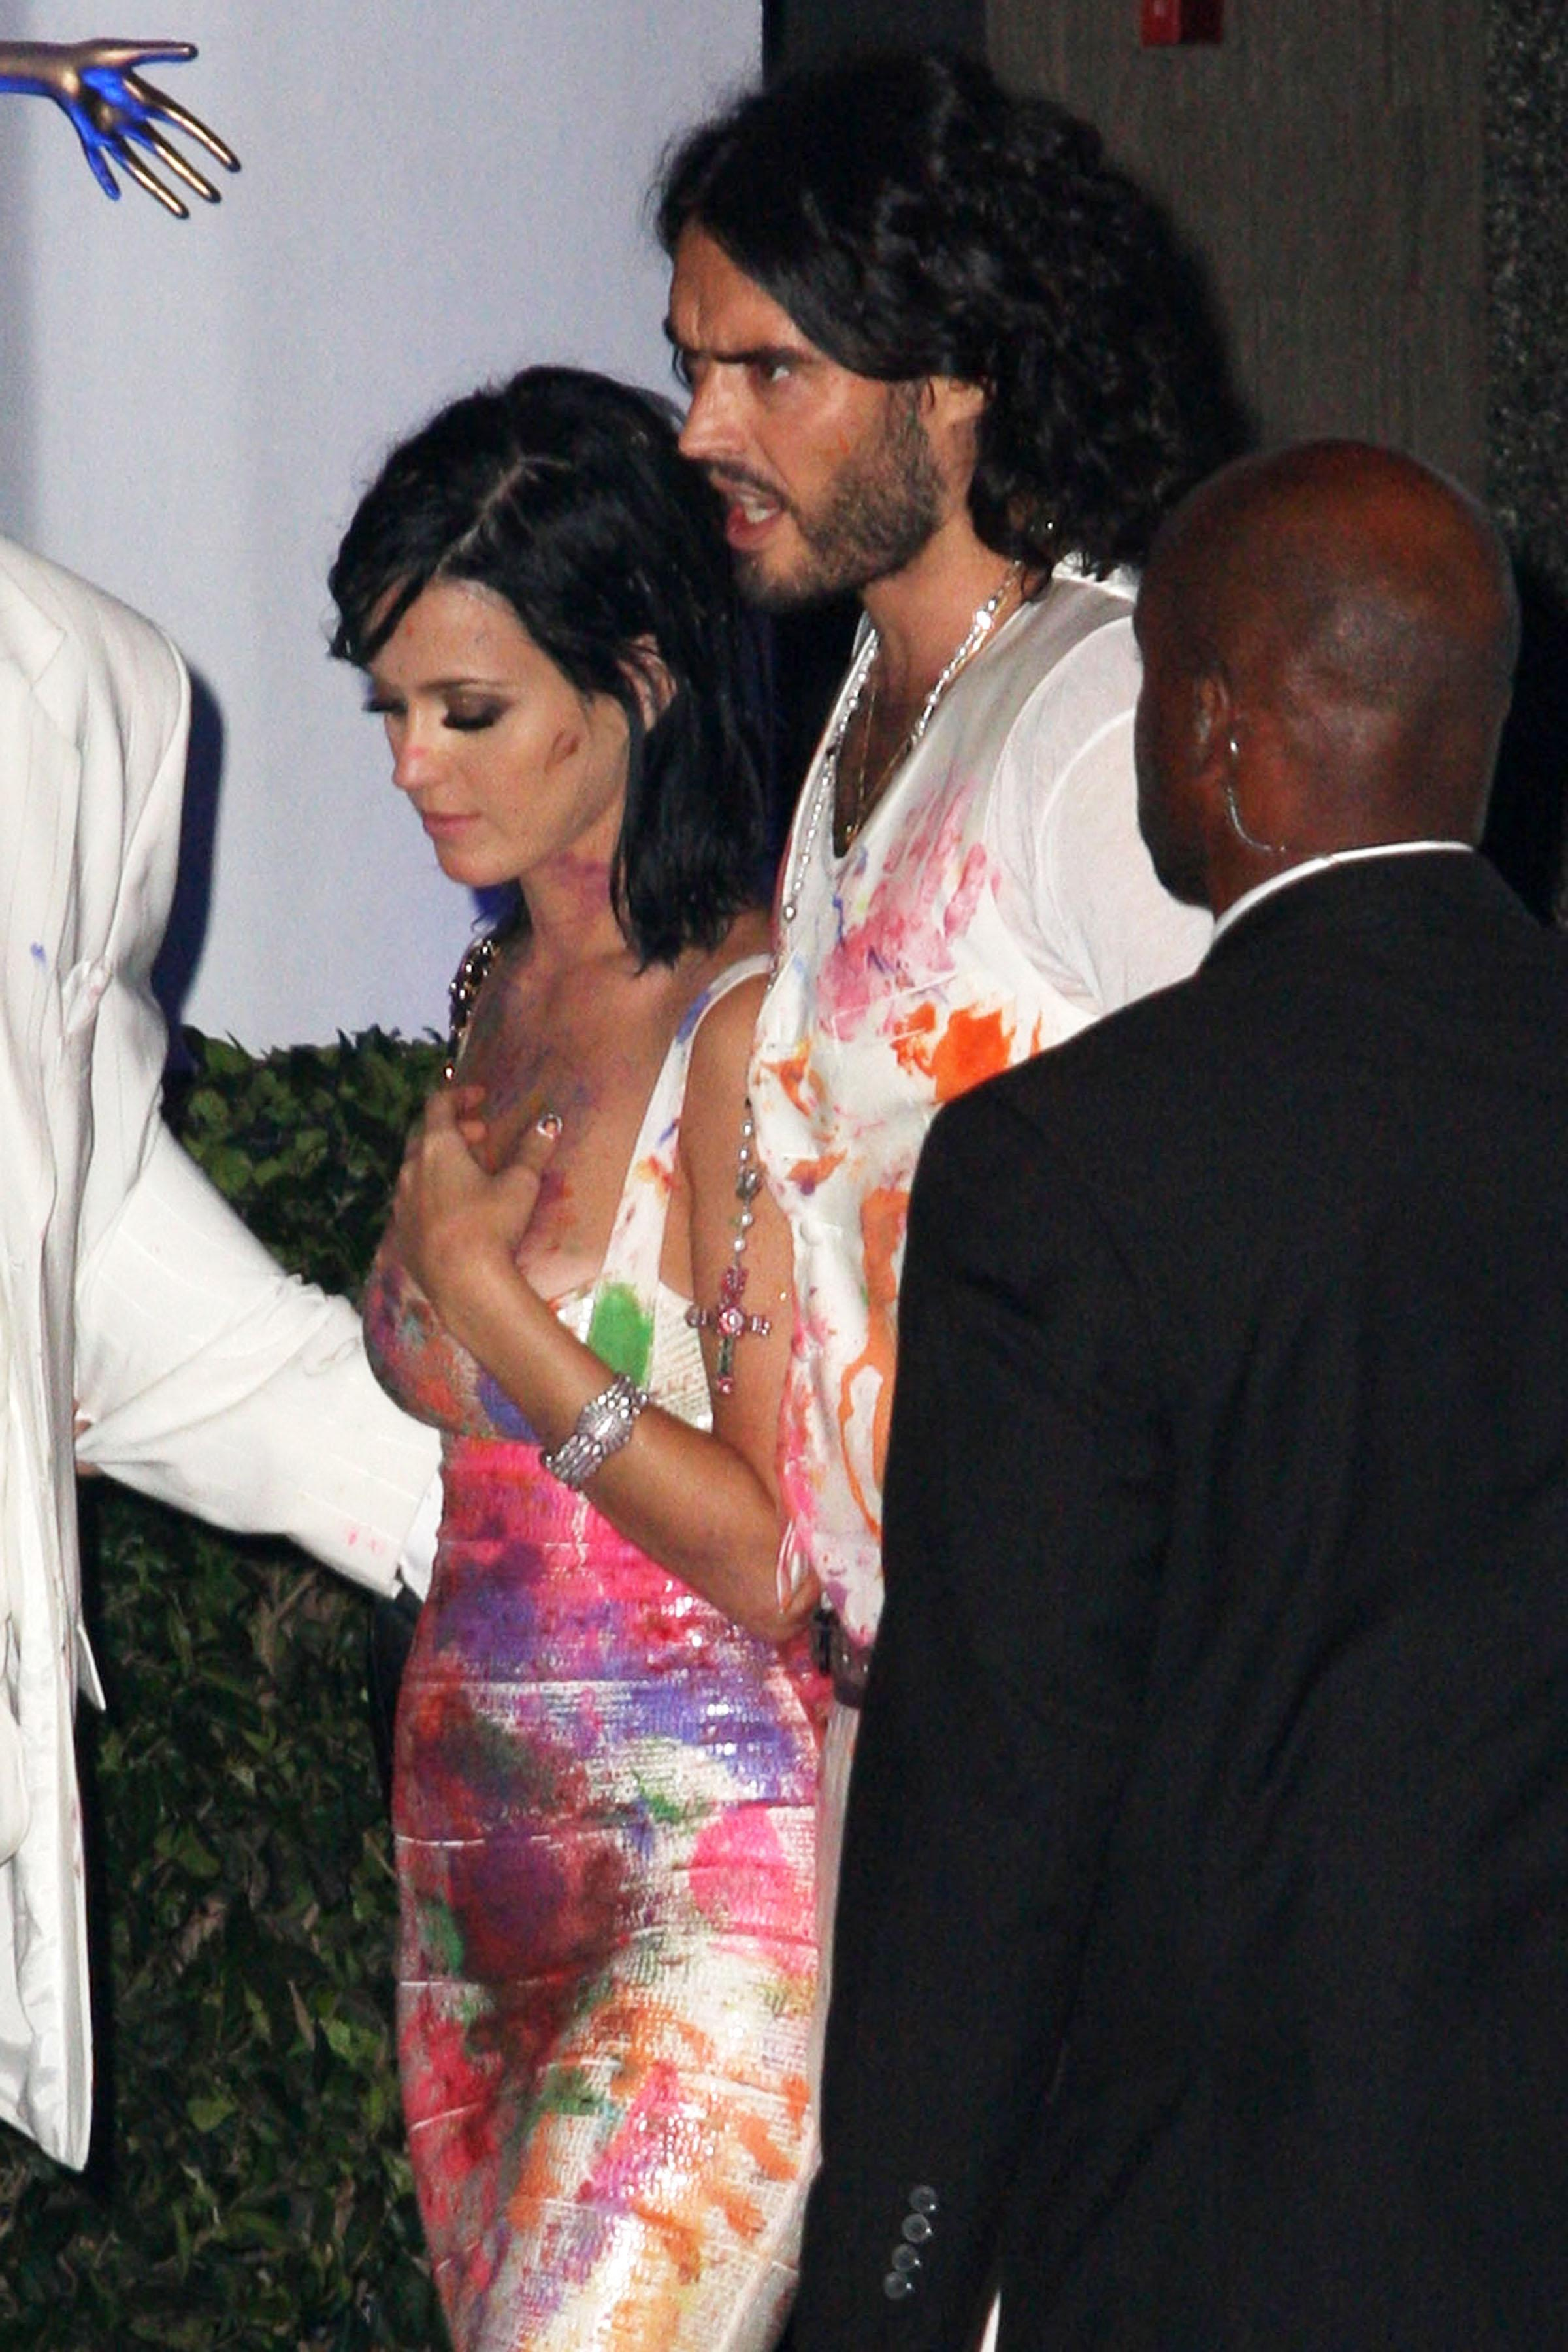 74473_Katy_Perry_celebrates_her_25th_birthday_at_Sunset_Beach_in_Hollywood_122_112lo.jpg